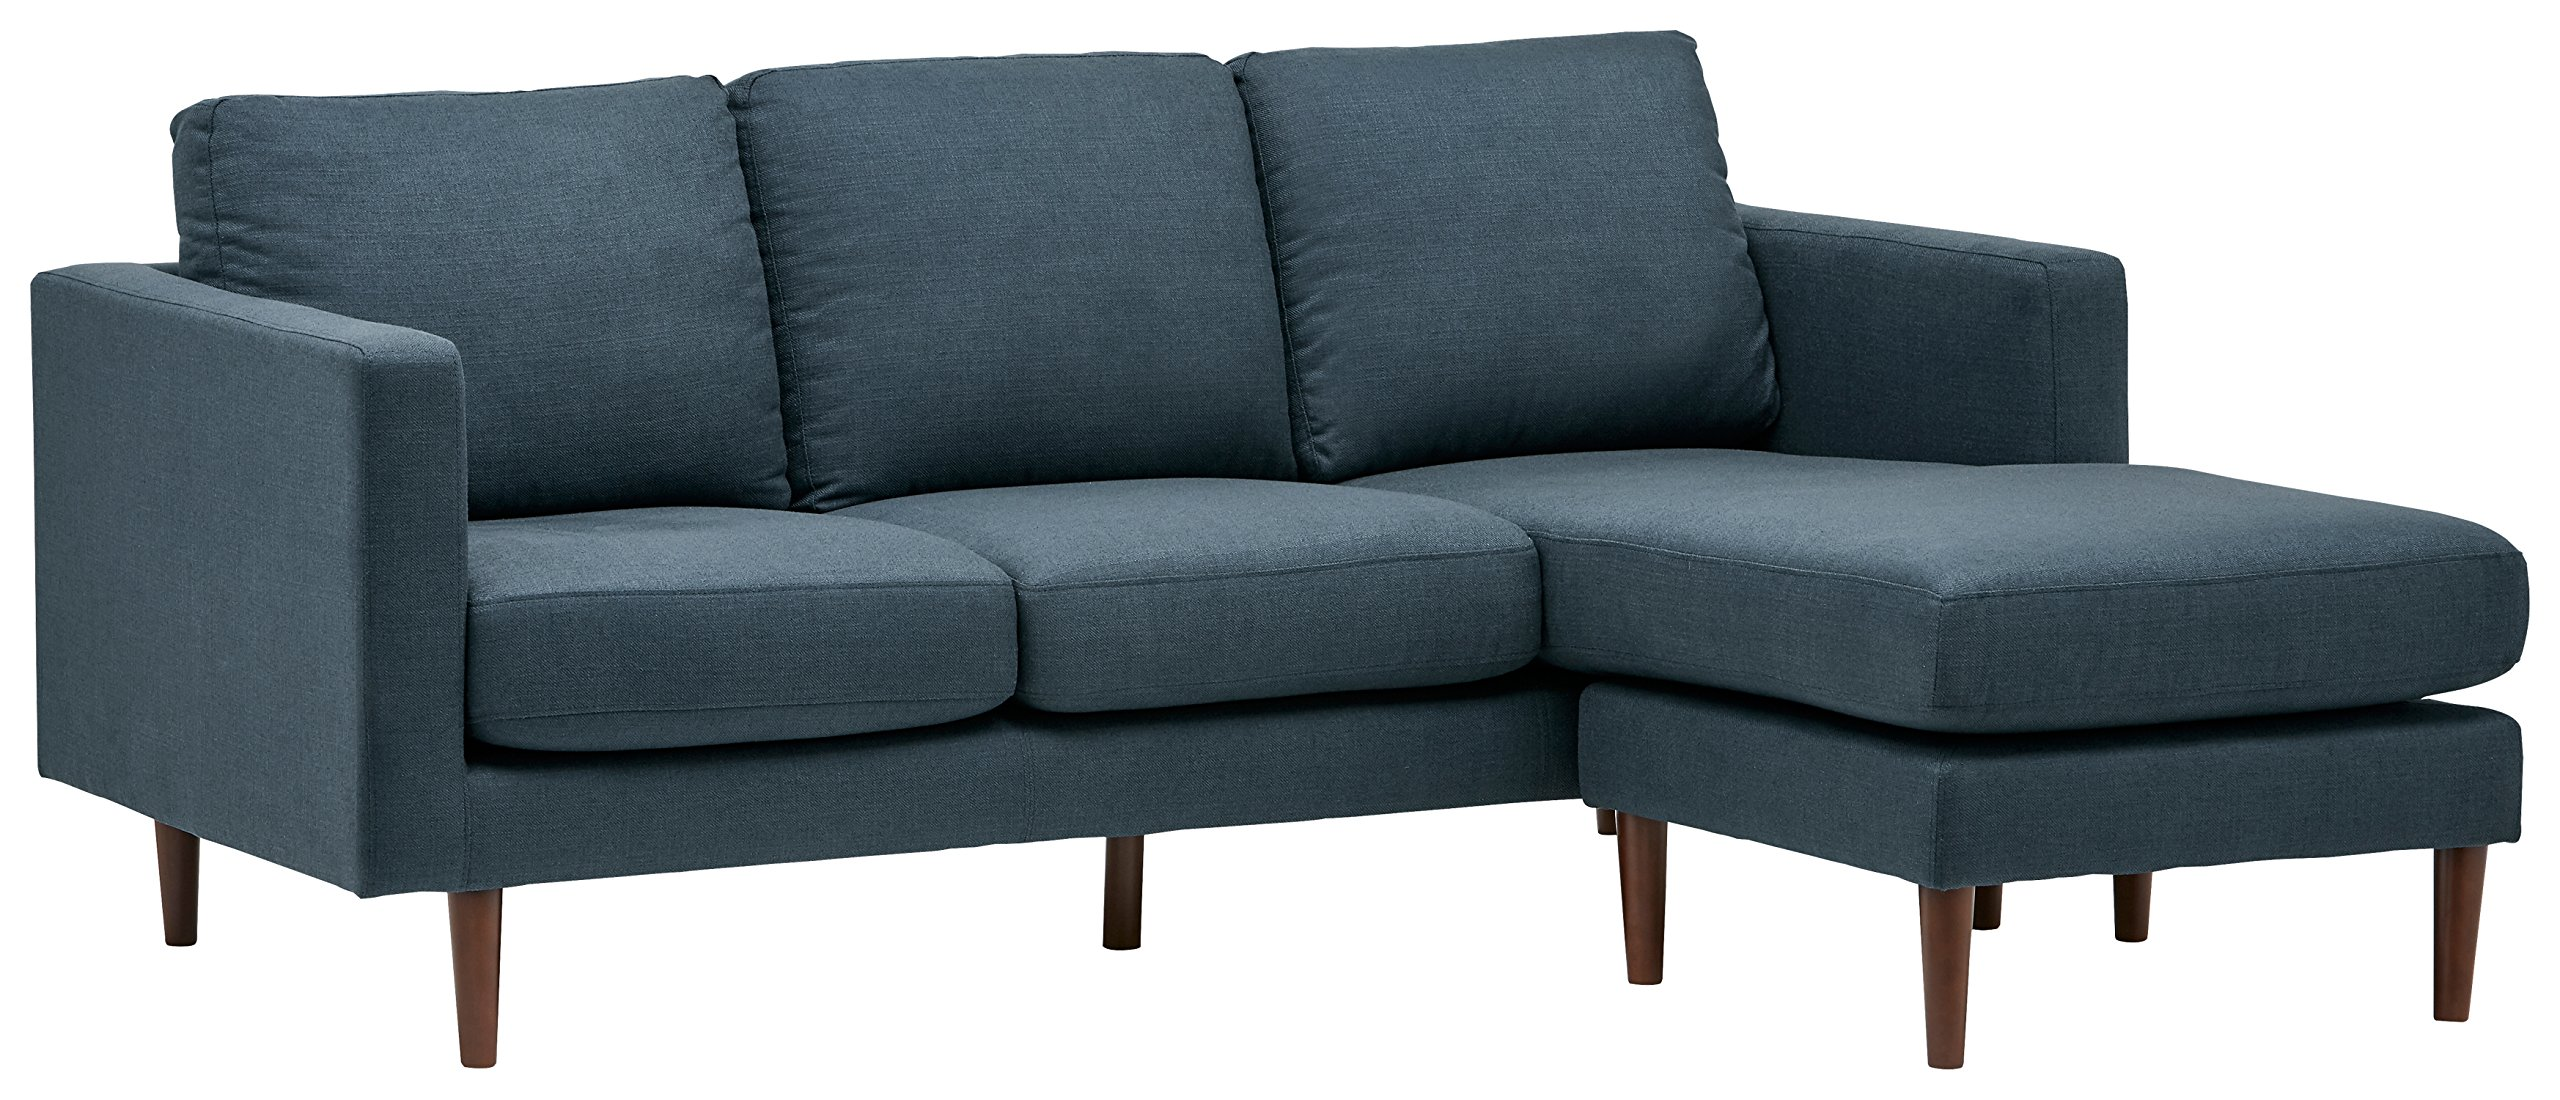 Rivet Reversible Chaise Sectional, Denim - Revolve Modern, 80'' W by Rivet